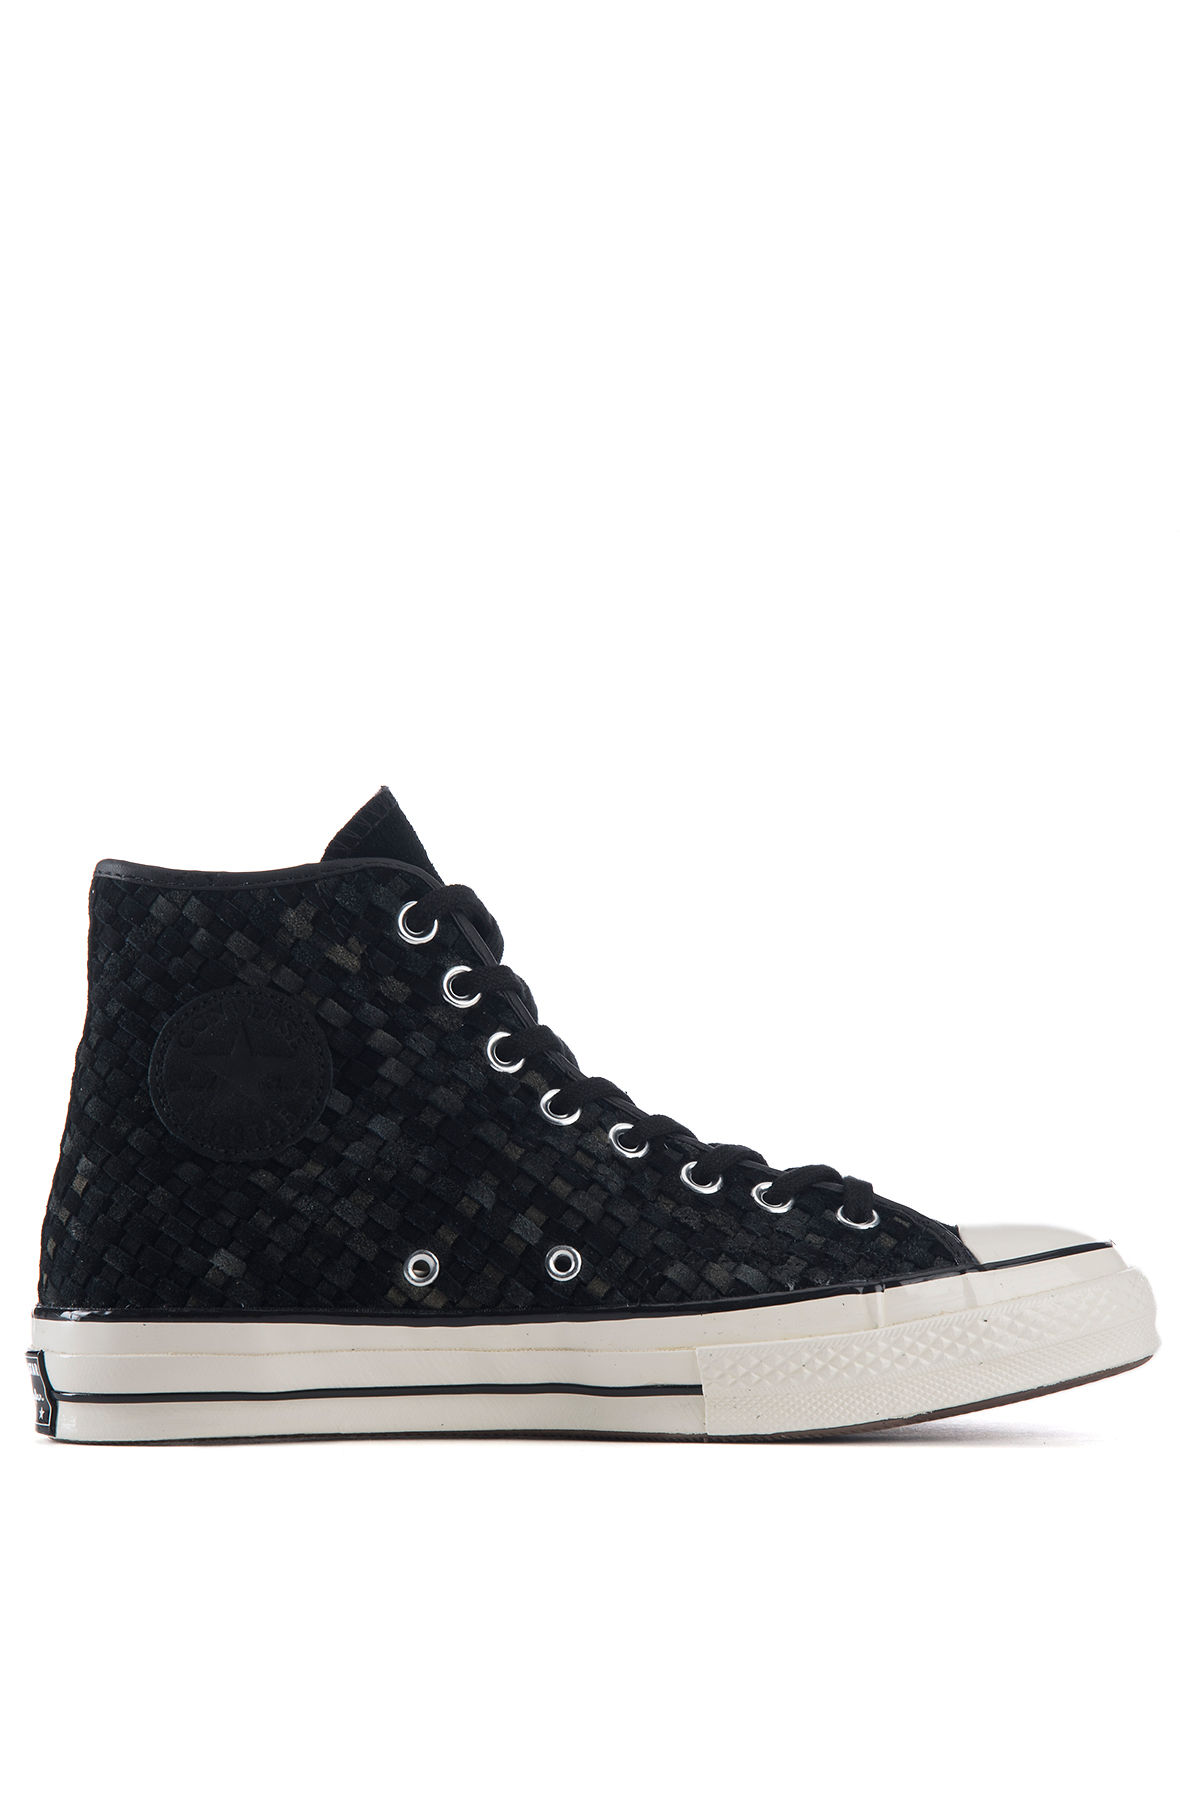 Image of The Chuck Taylor All Star 70' Sneaker in Black & Egret